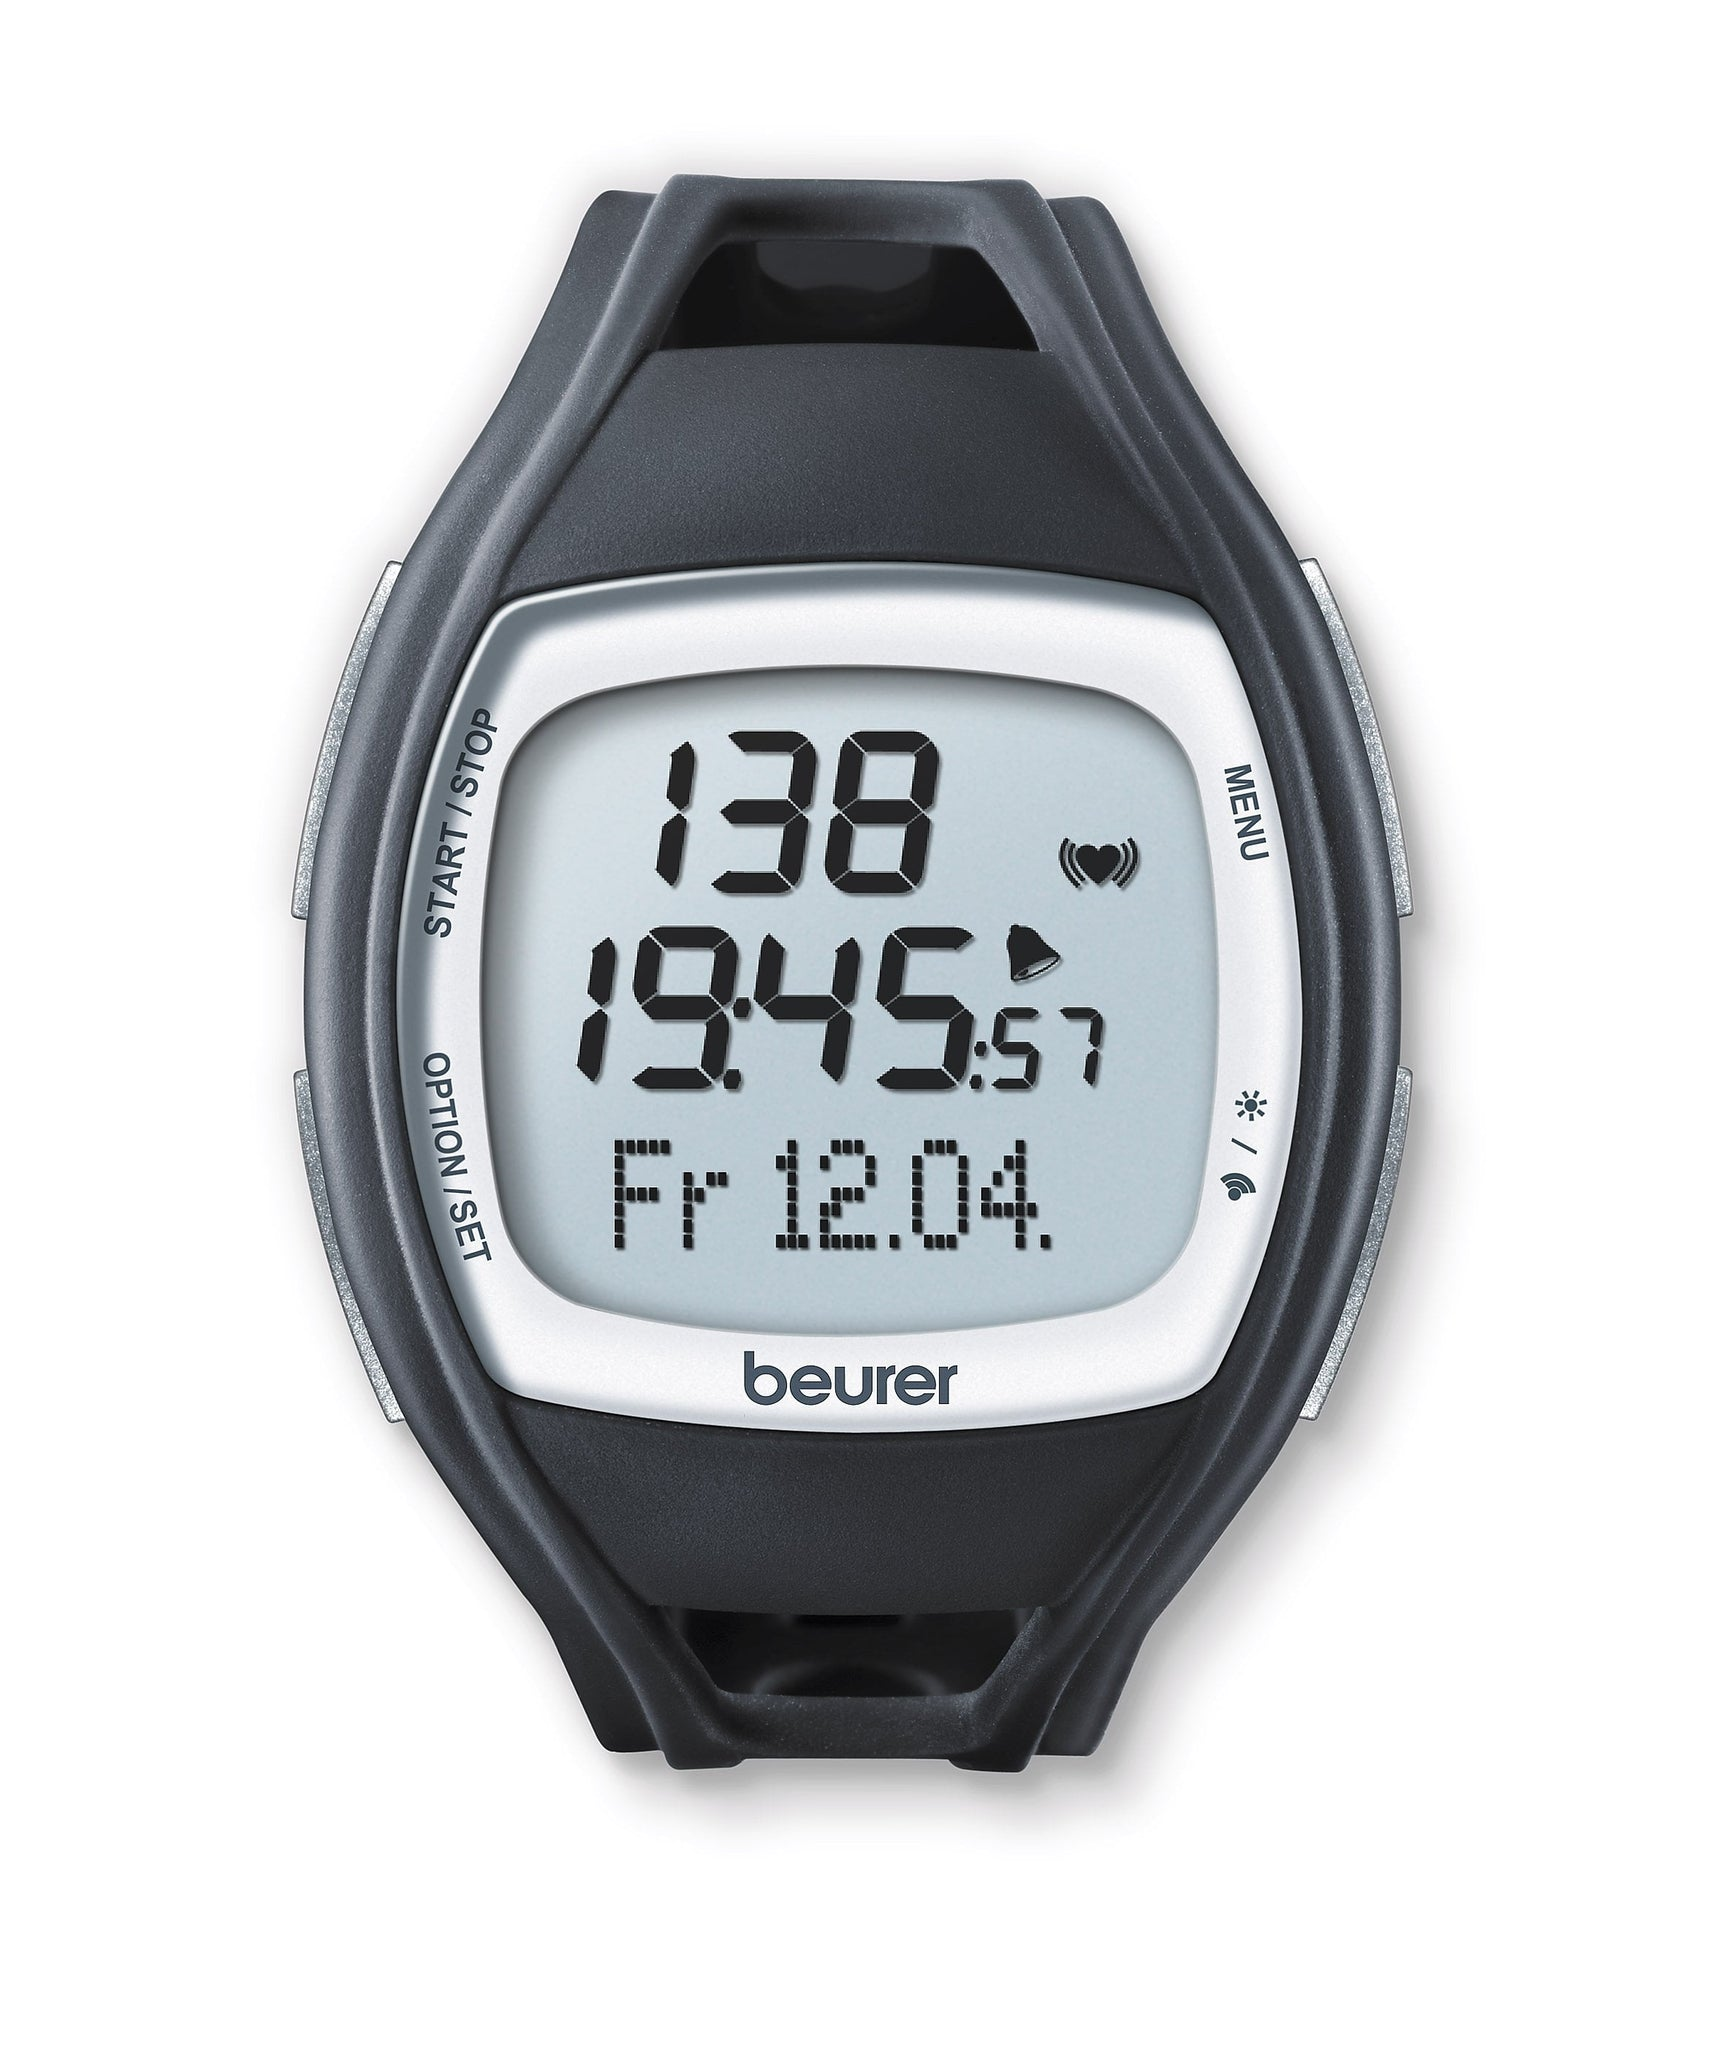 Beurer Heart Rate Monitor PM 45 With Chest Strap